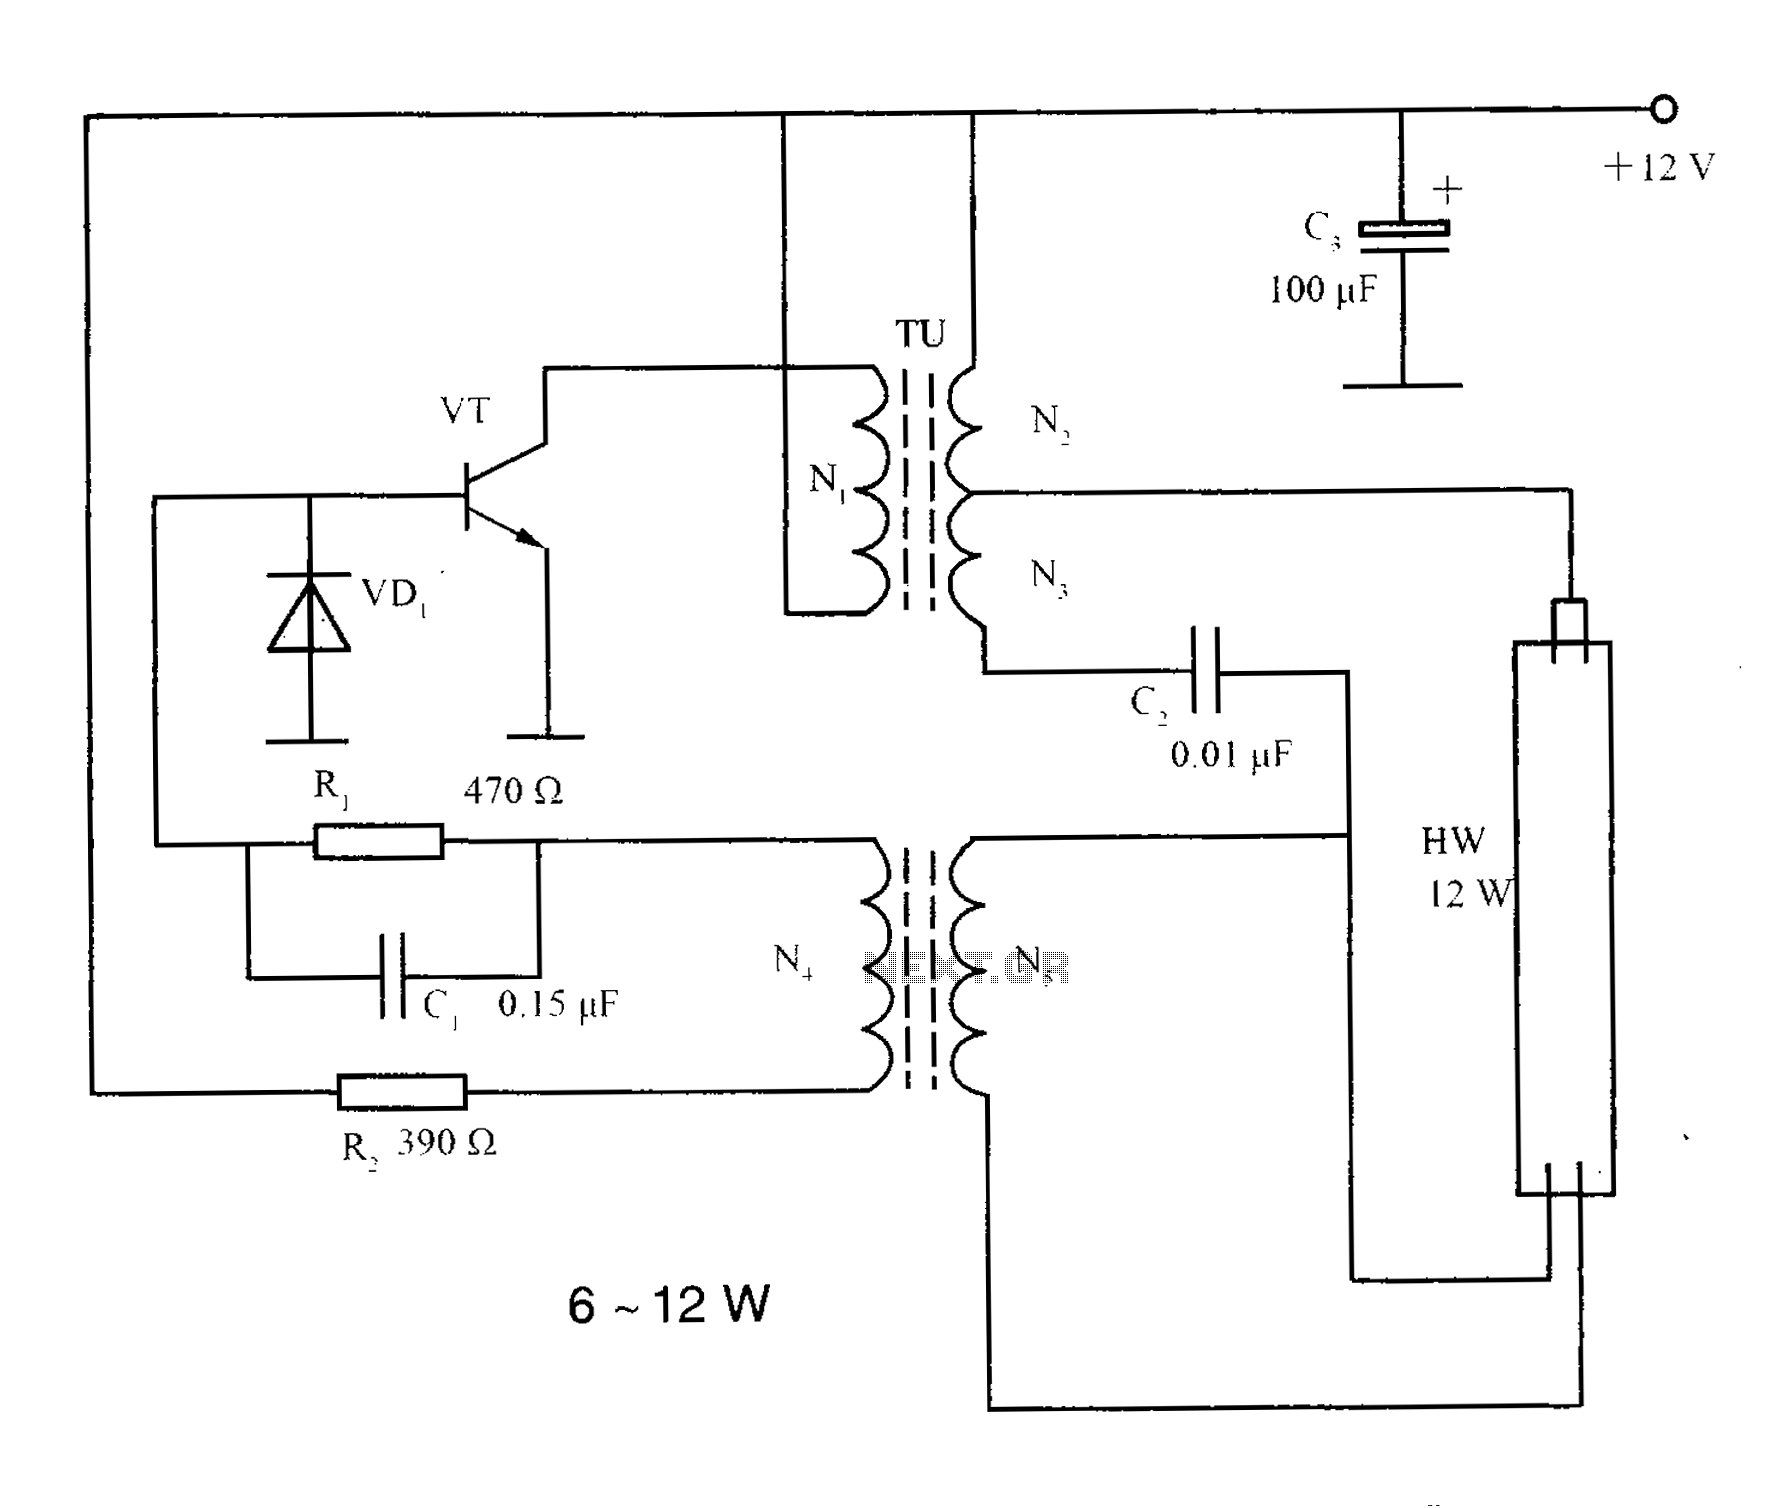 3 Way Touch Lamp Wiring Diagram | Wiring Library - 12 Volt 3 Way Switch Wiring Diagram